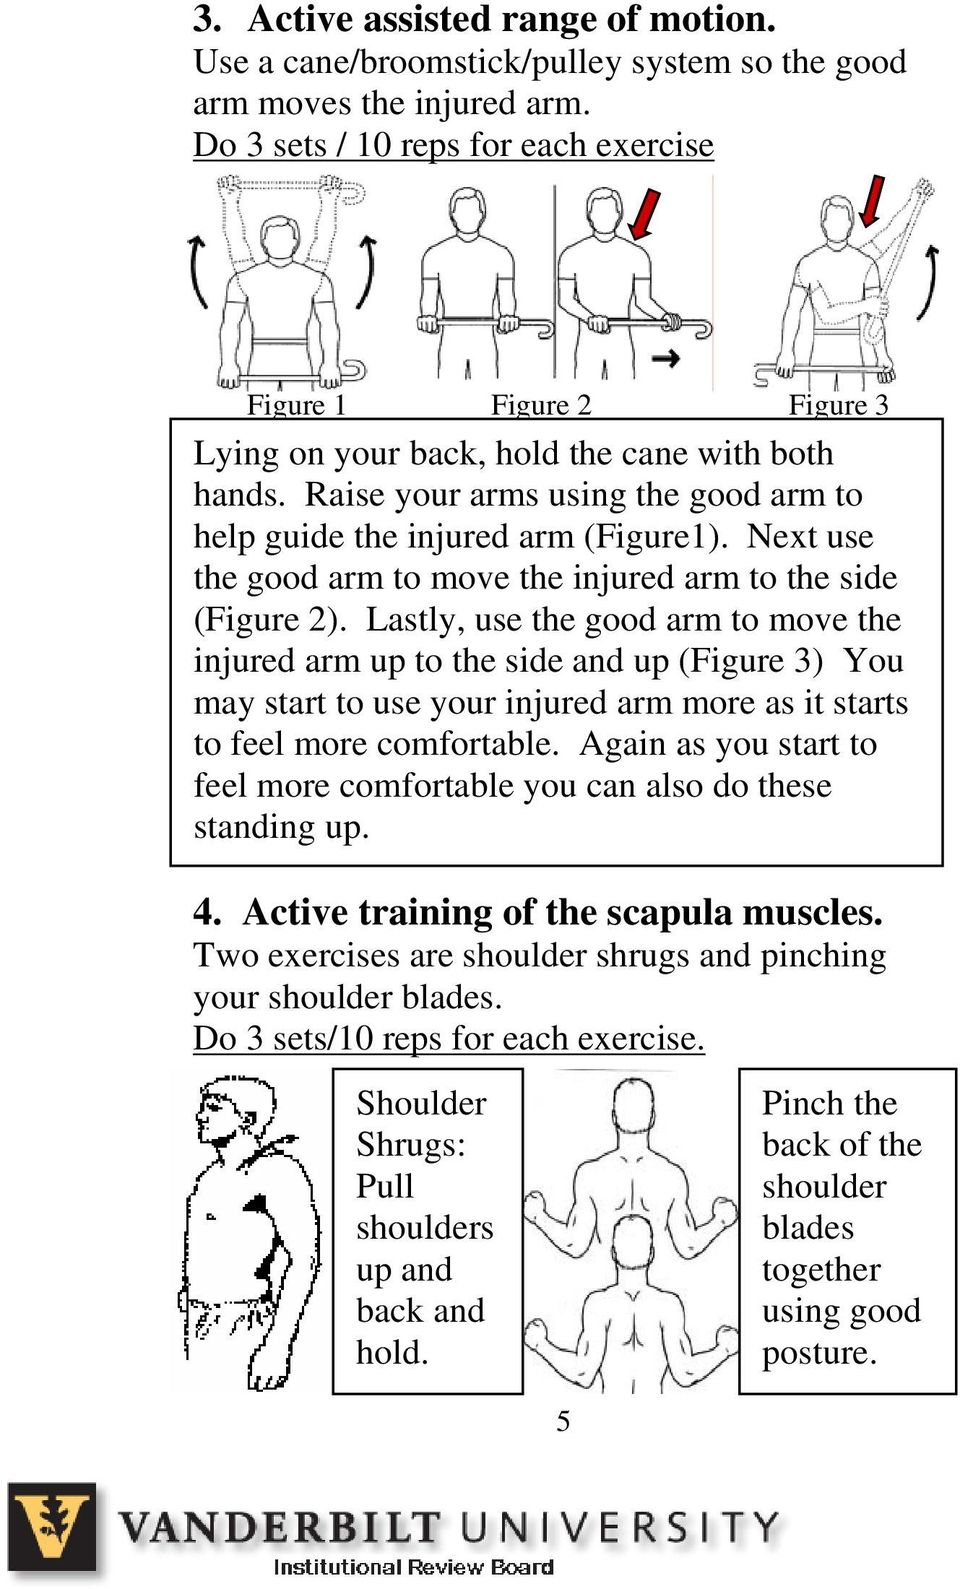 Next use the good arm to move the injured arm to the side (Figure 2).